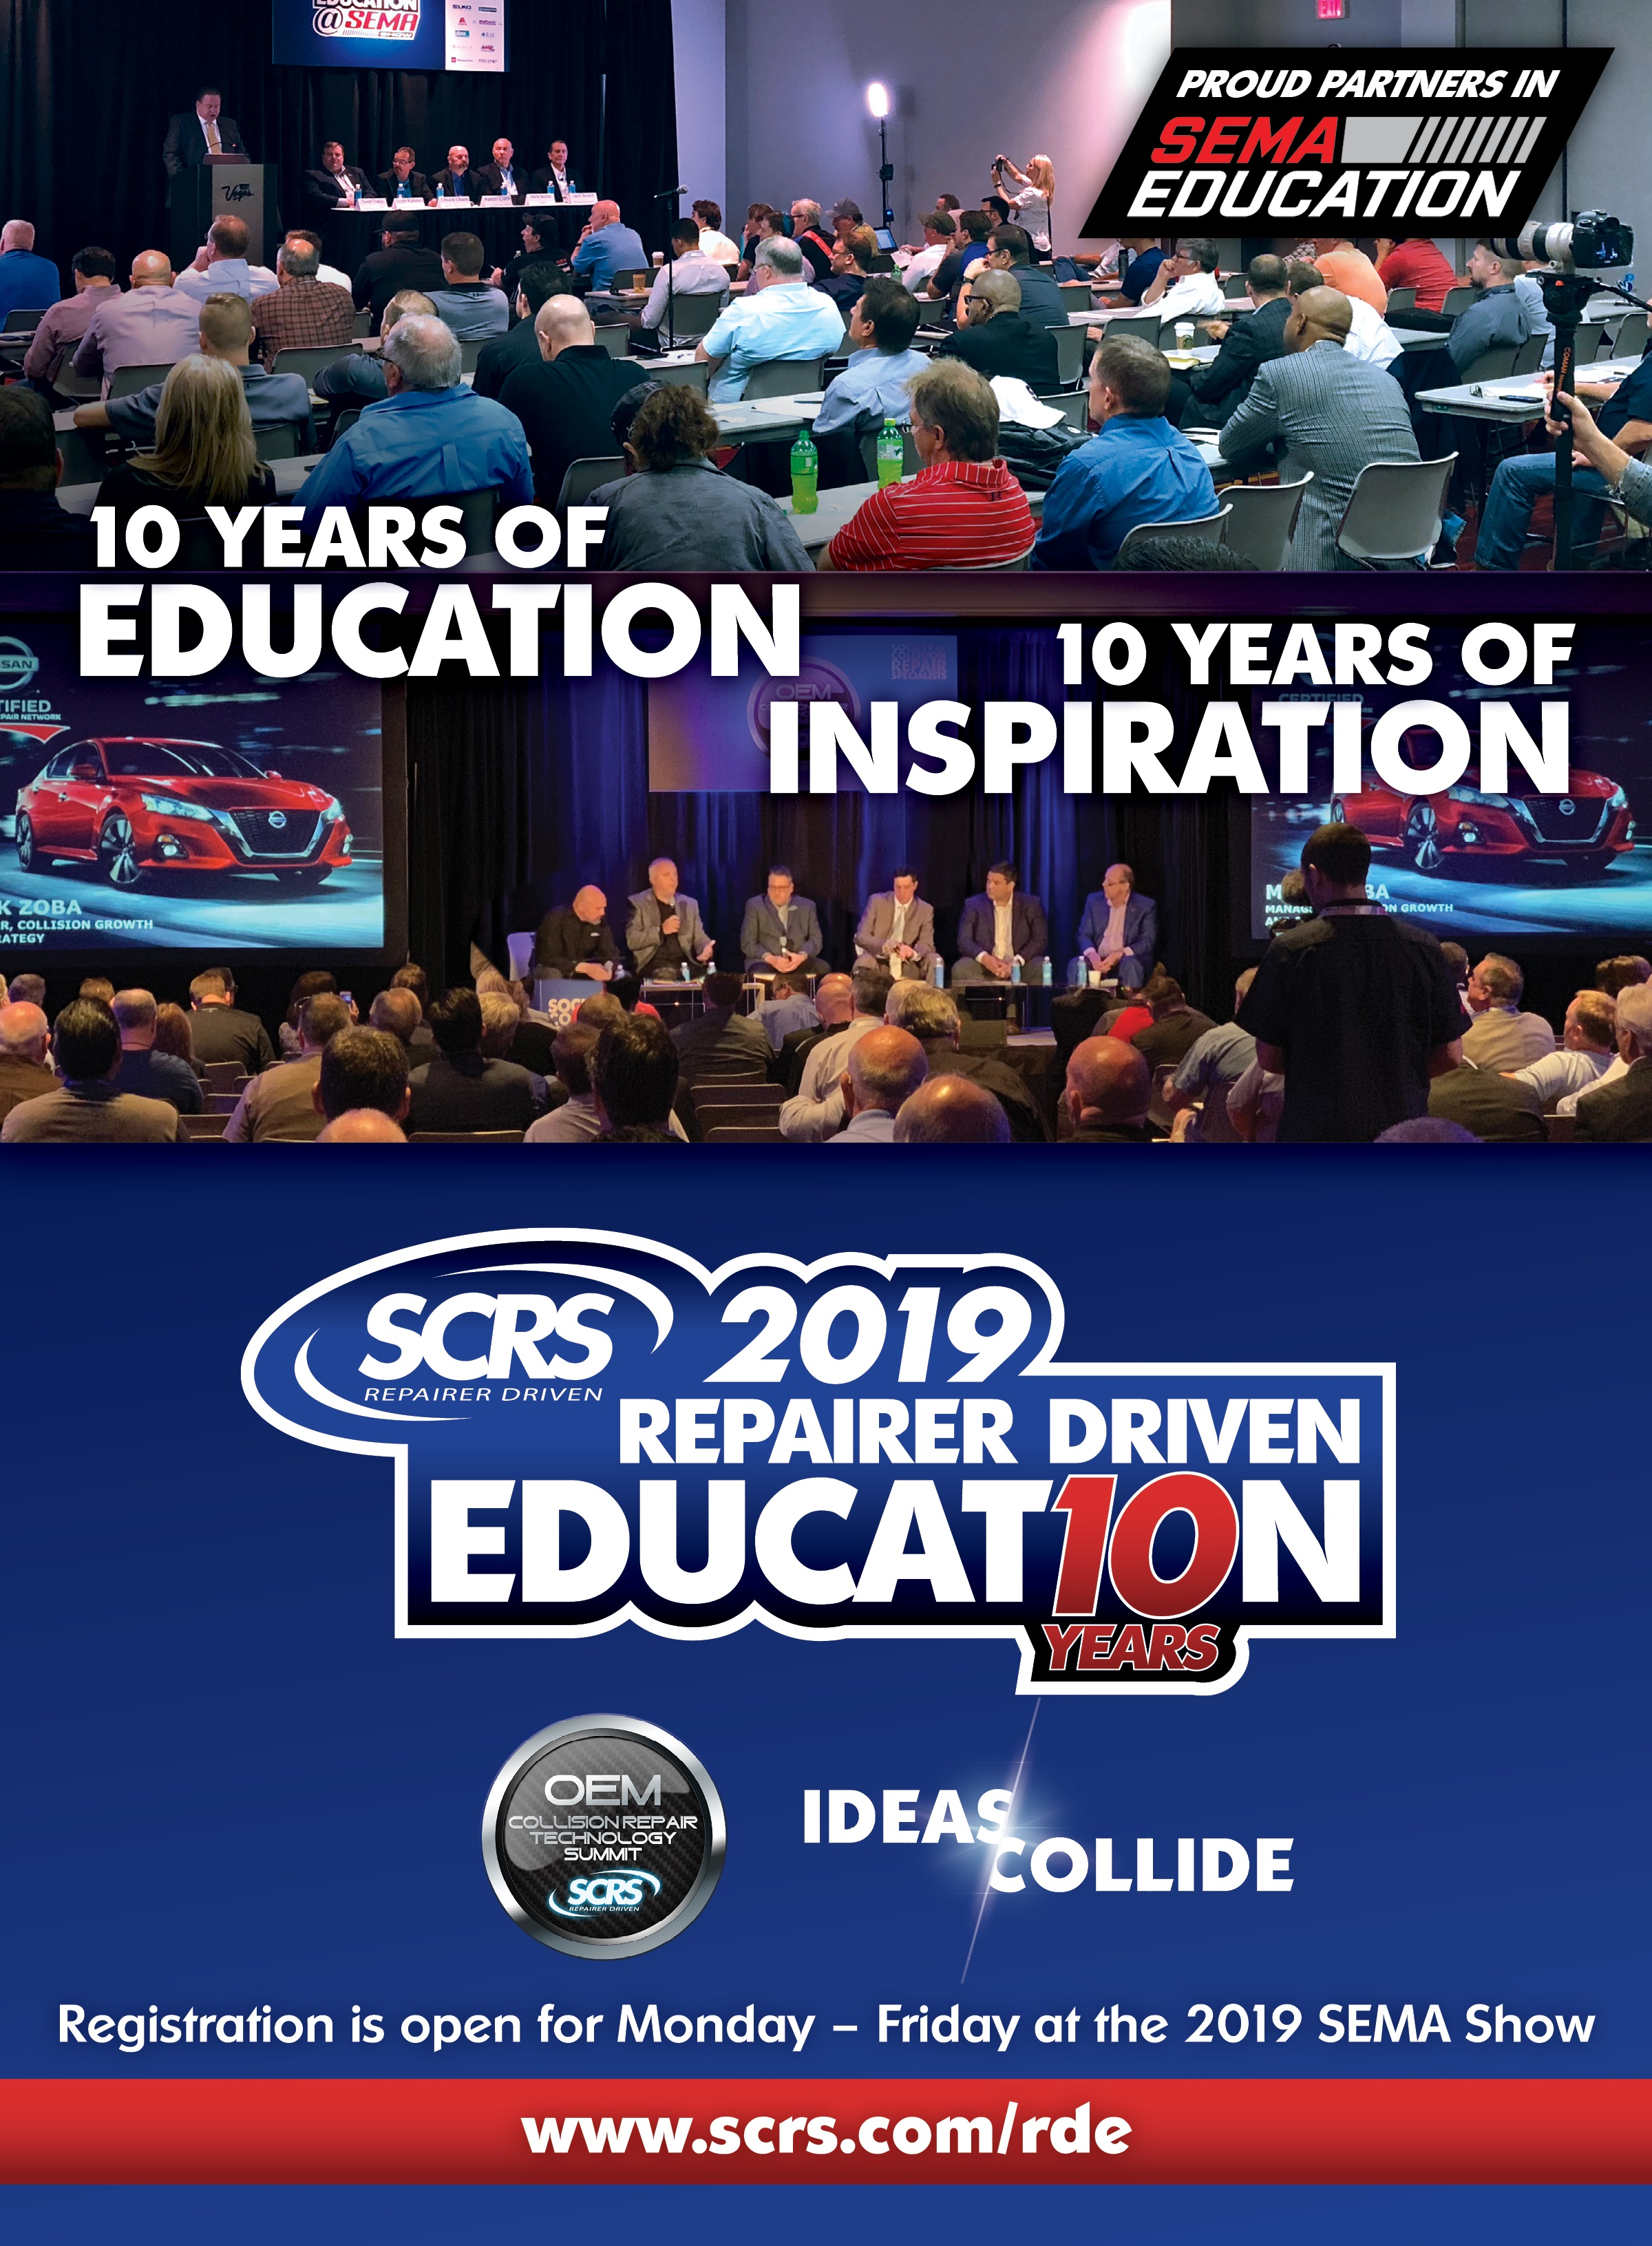 Attend the 2019 Repairer Driven Education series at SEMA